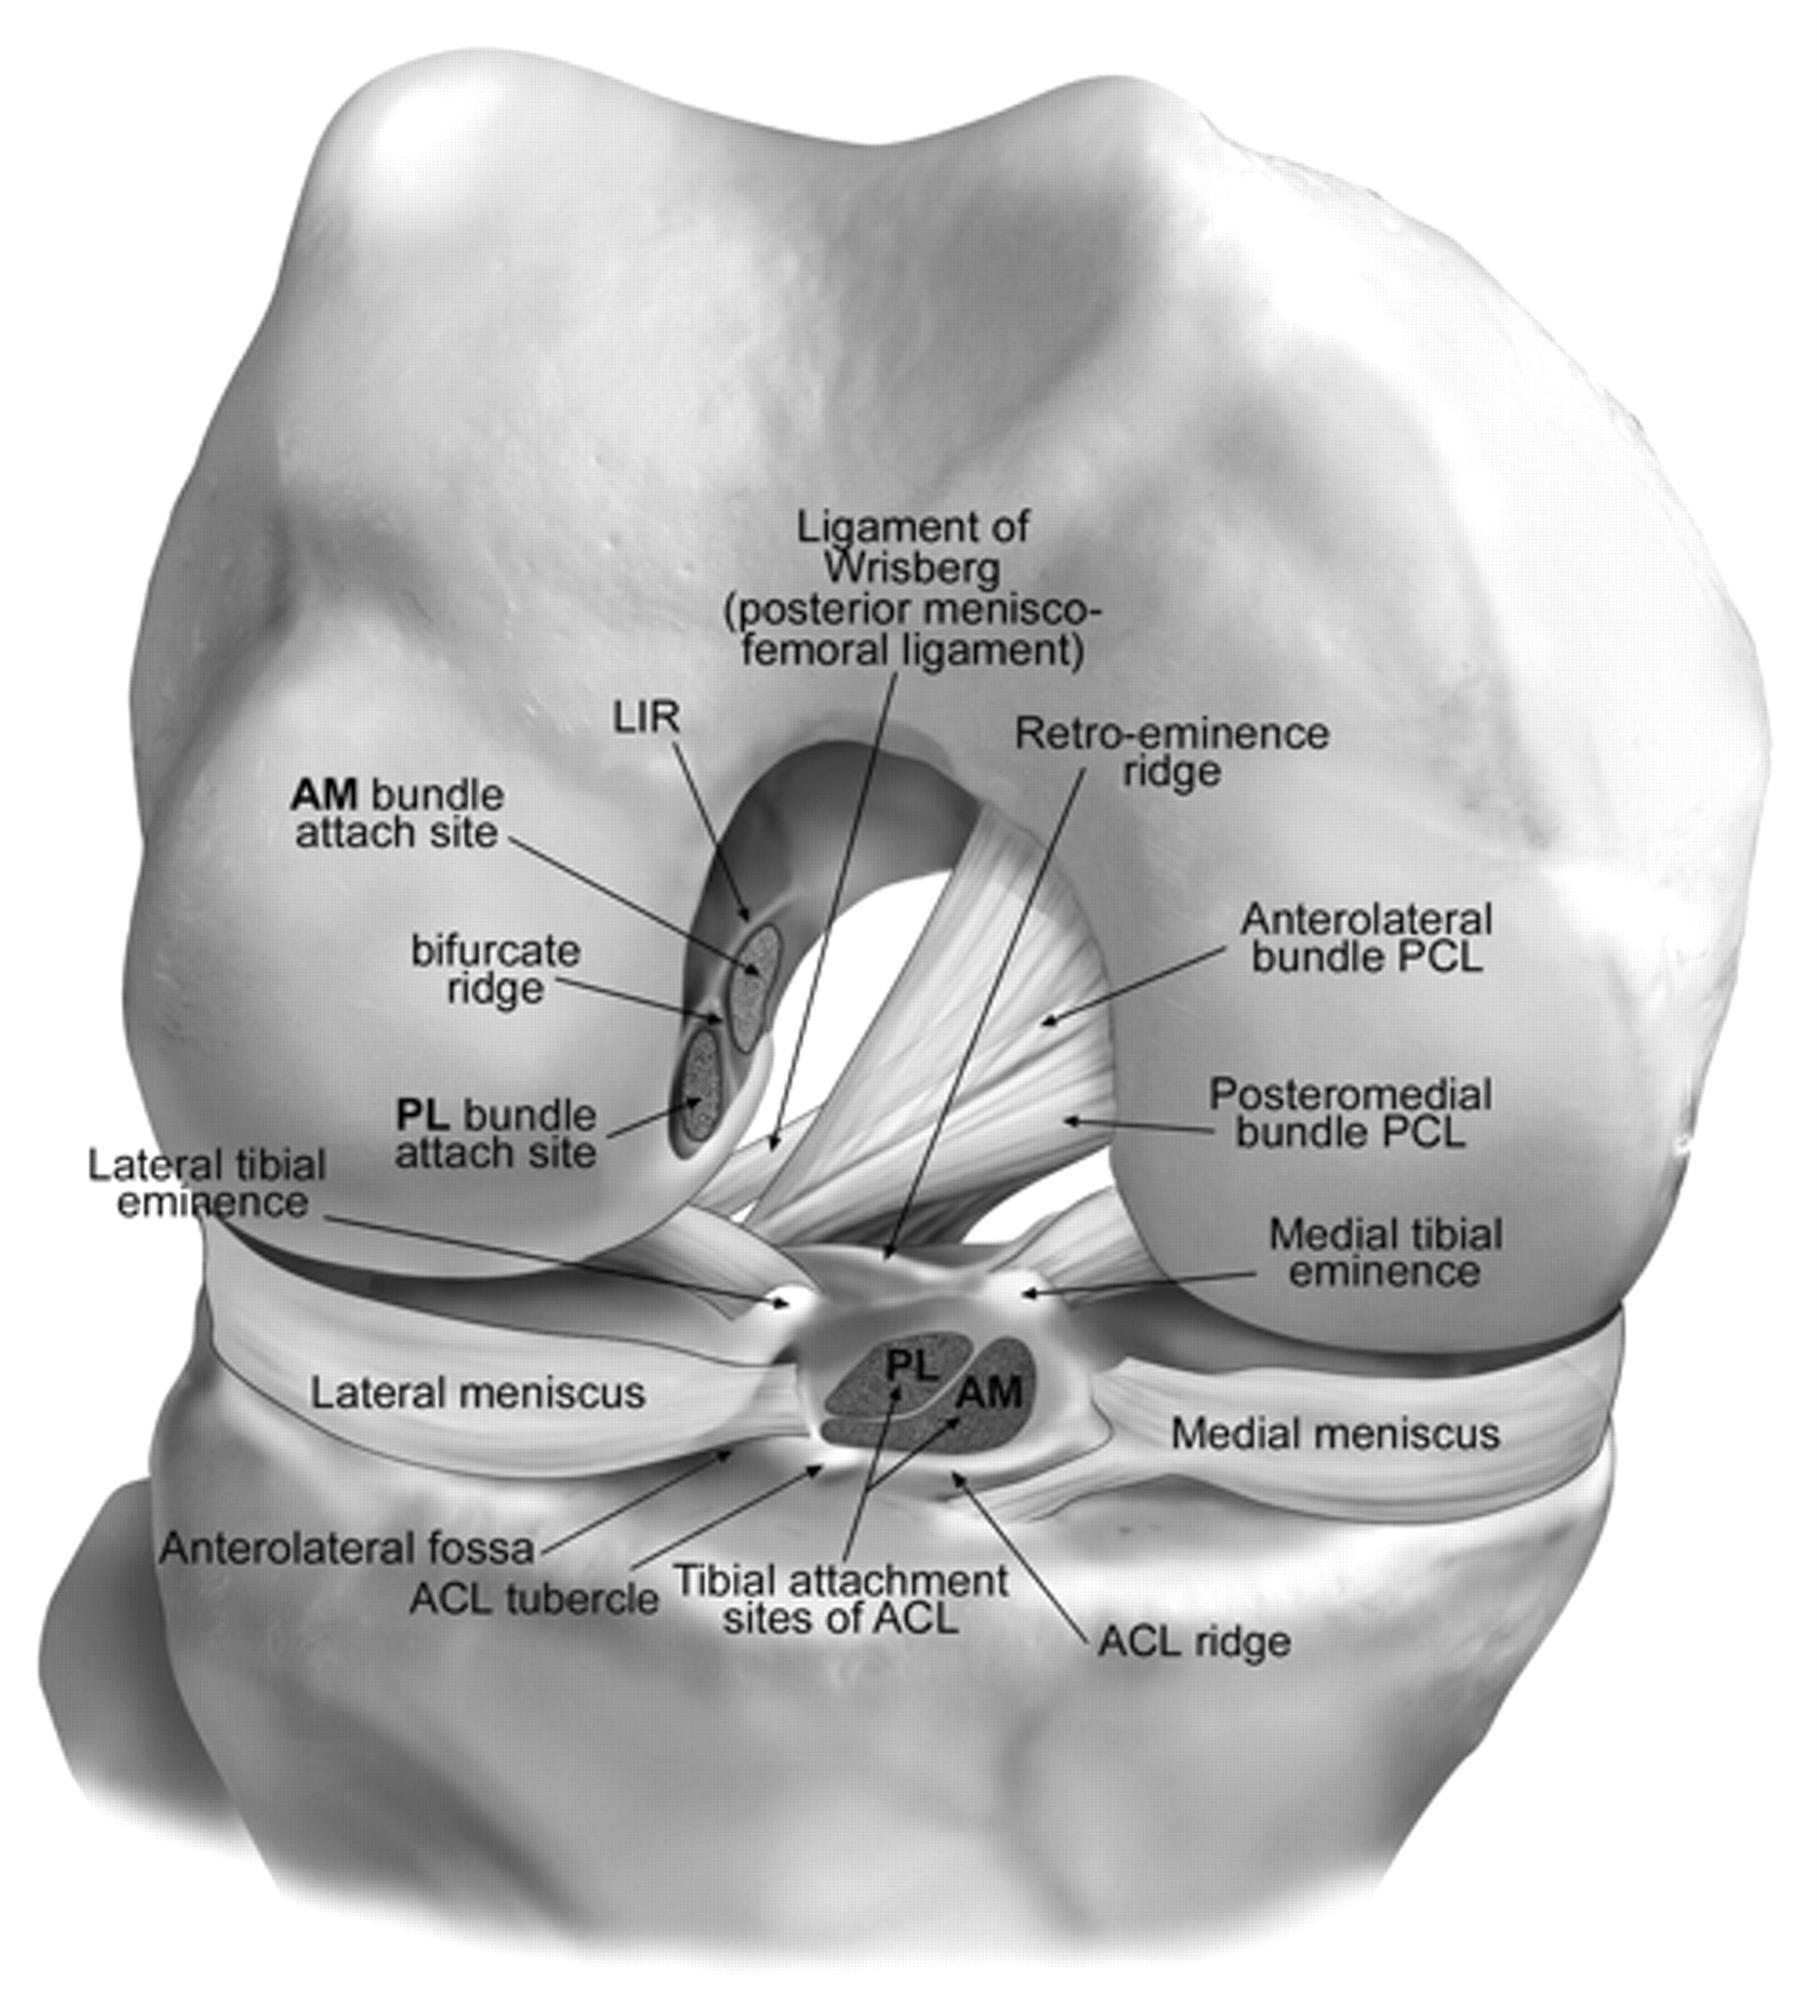 https://upload.orthobullets.com/topic/3001/images/acl anterior view knee diagram.jpg